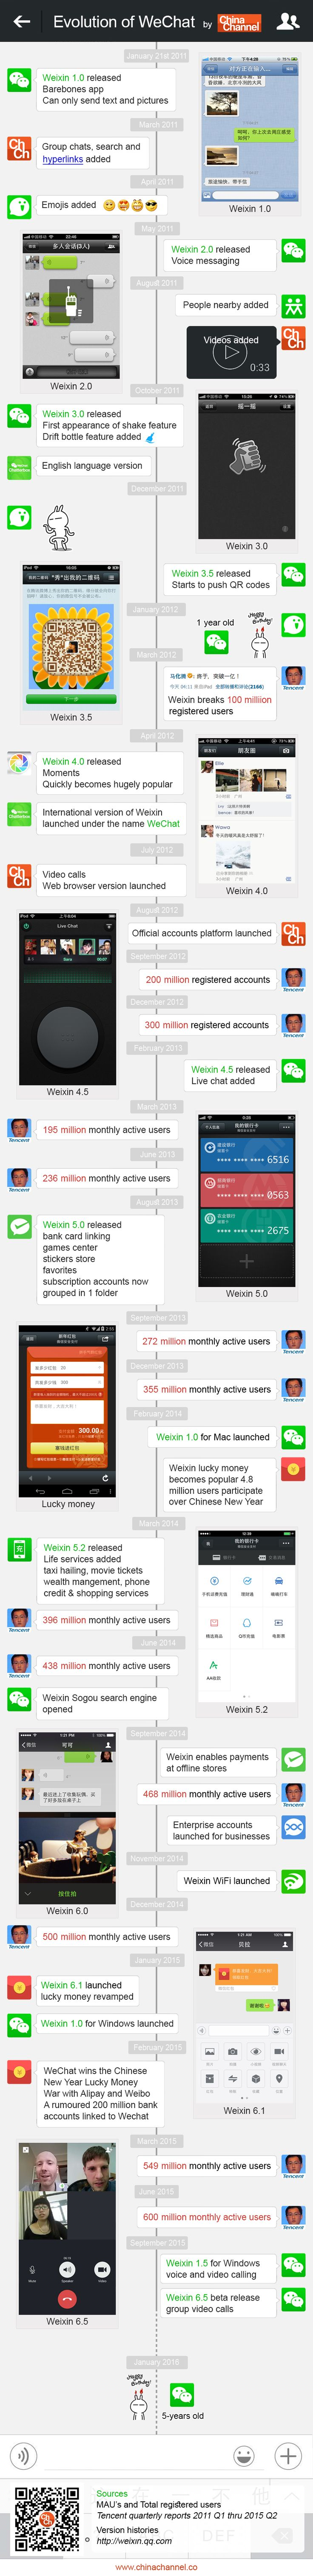 WeChat is the leading social/new media app in China with million users. This picture shows the involvement of WeChat from a social tool to a media tool as well.